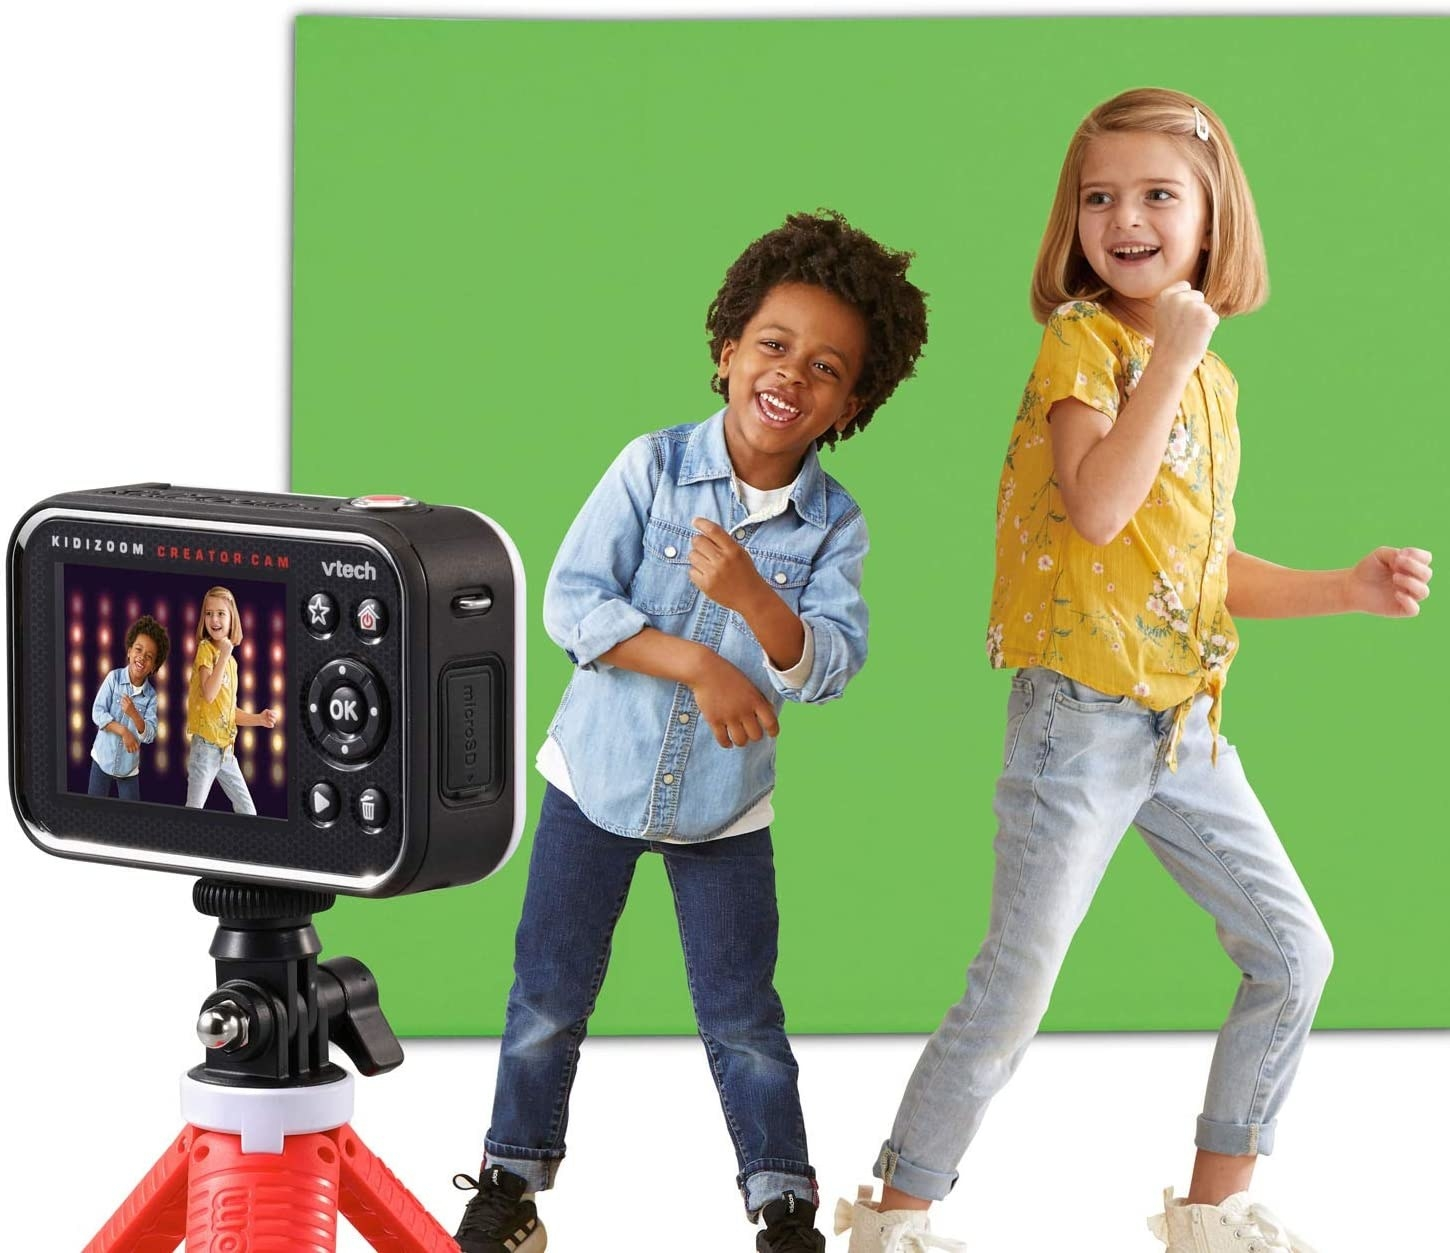 two kids in front of the green screen and the camera filming them with a light background behind them